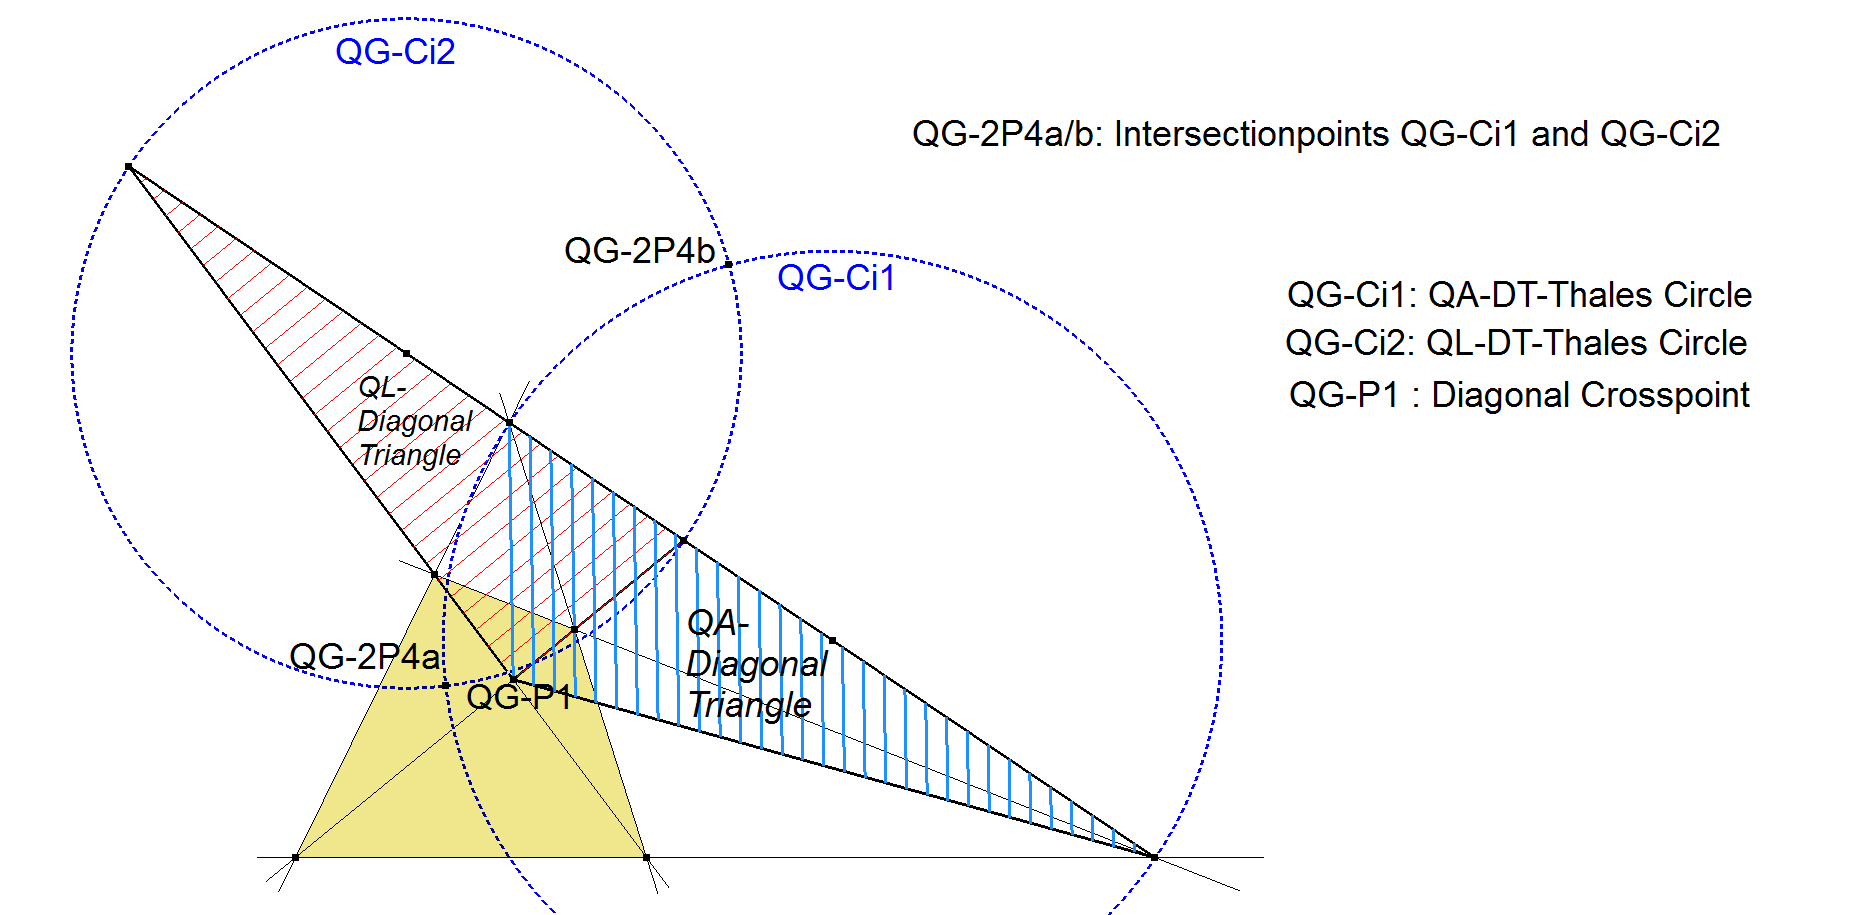 QG-2P4-Intersectionpoints QG-Ci1 and QG-Ci2-01